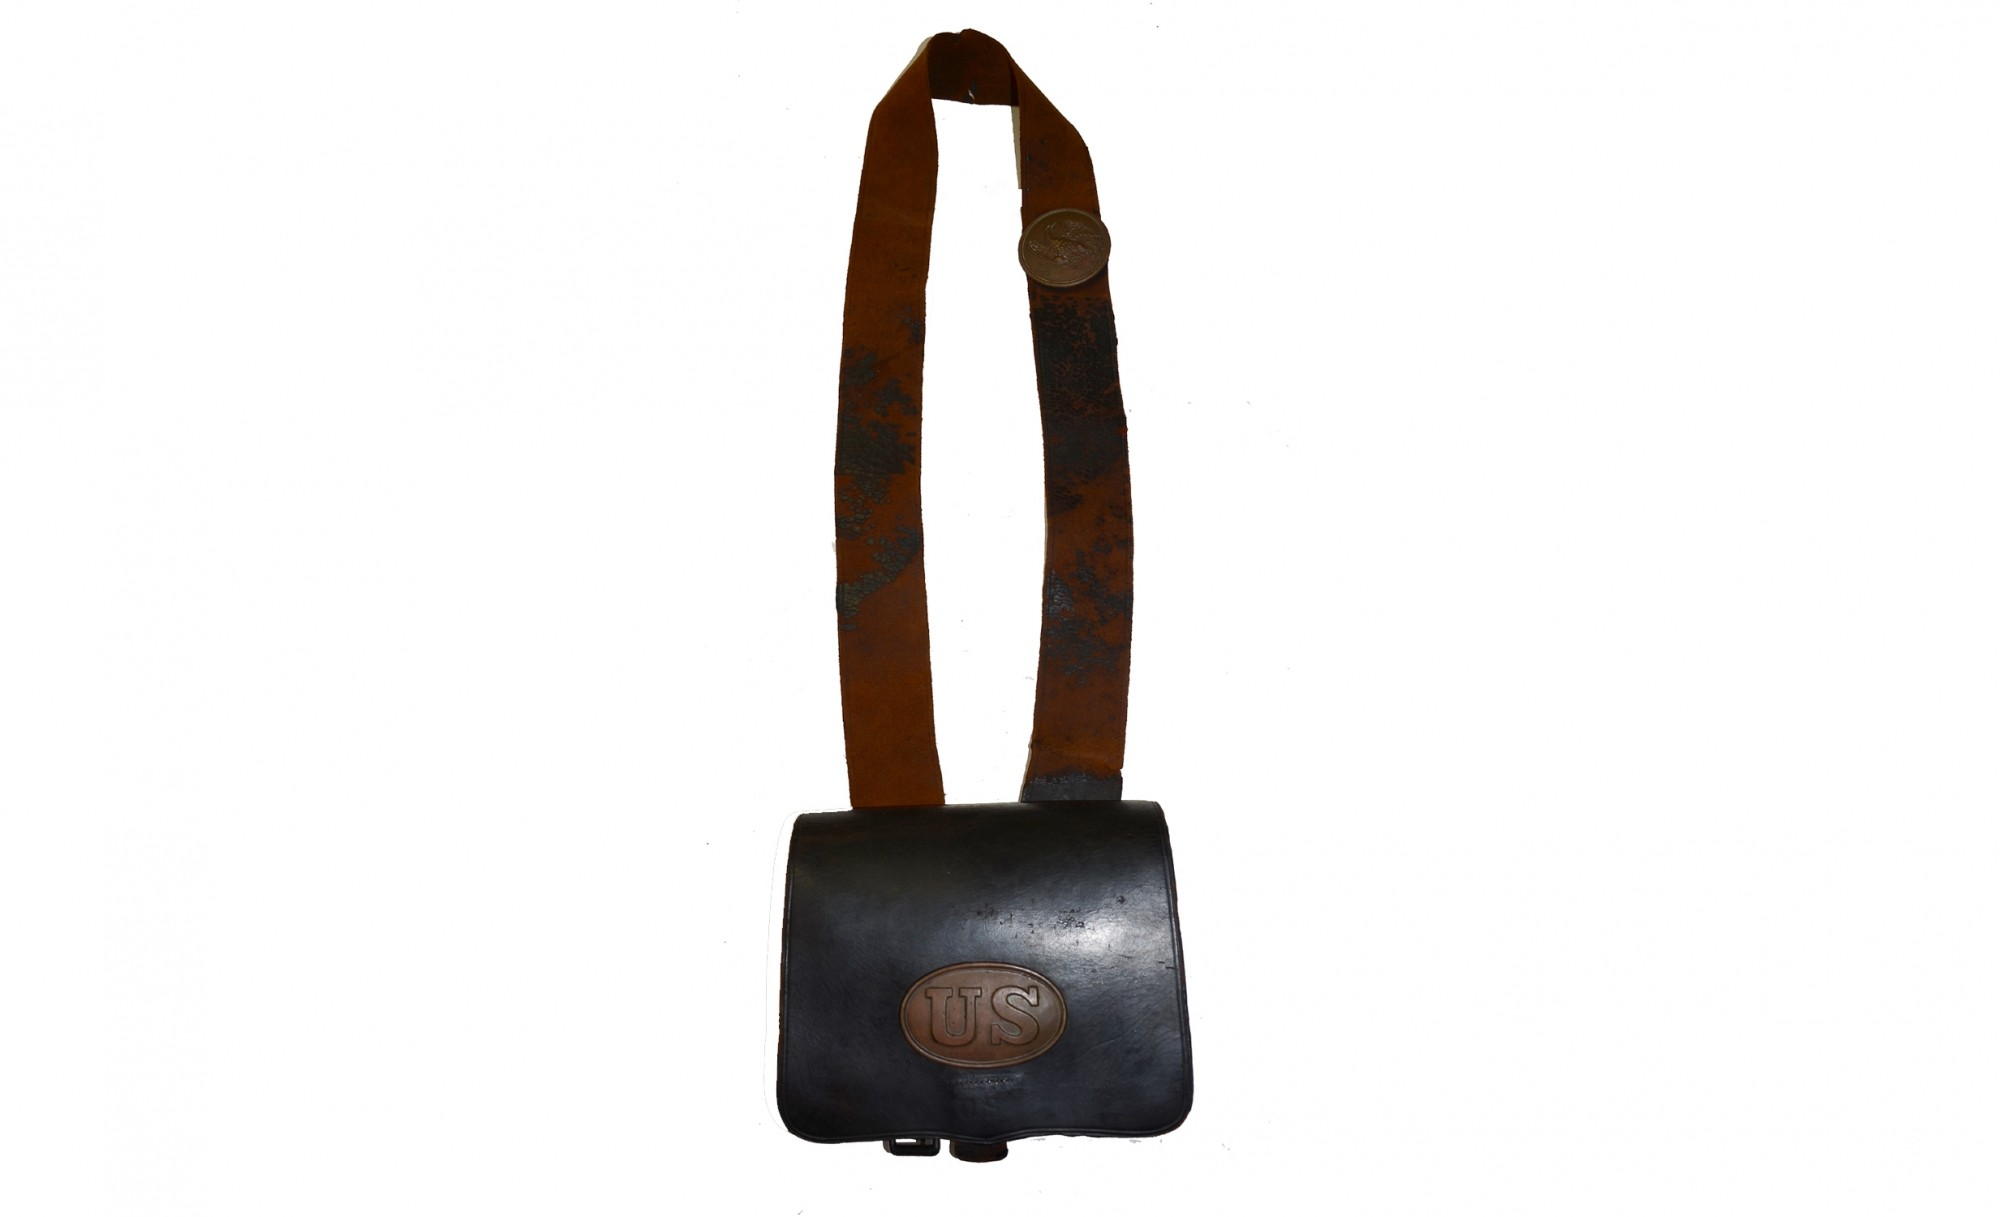 U.S. STAMPED, MAKER MARKED PATTERN 1861 LEATHER, RIFLE-MUSKET CARTRIDGE BOX WITH SHOULDER STRAP